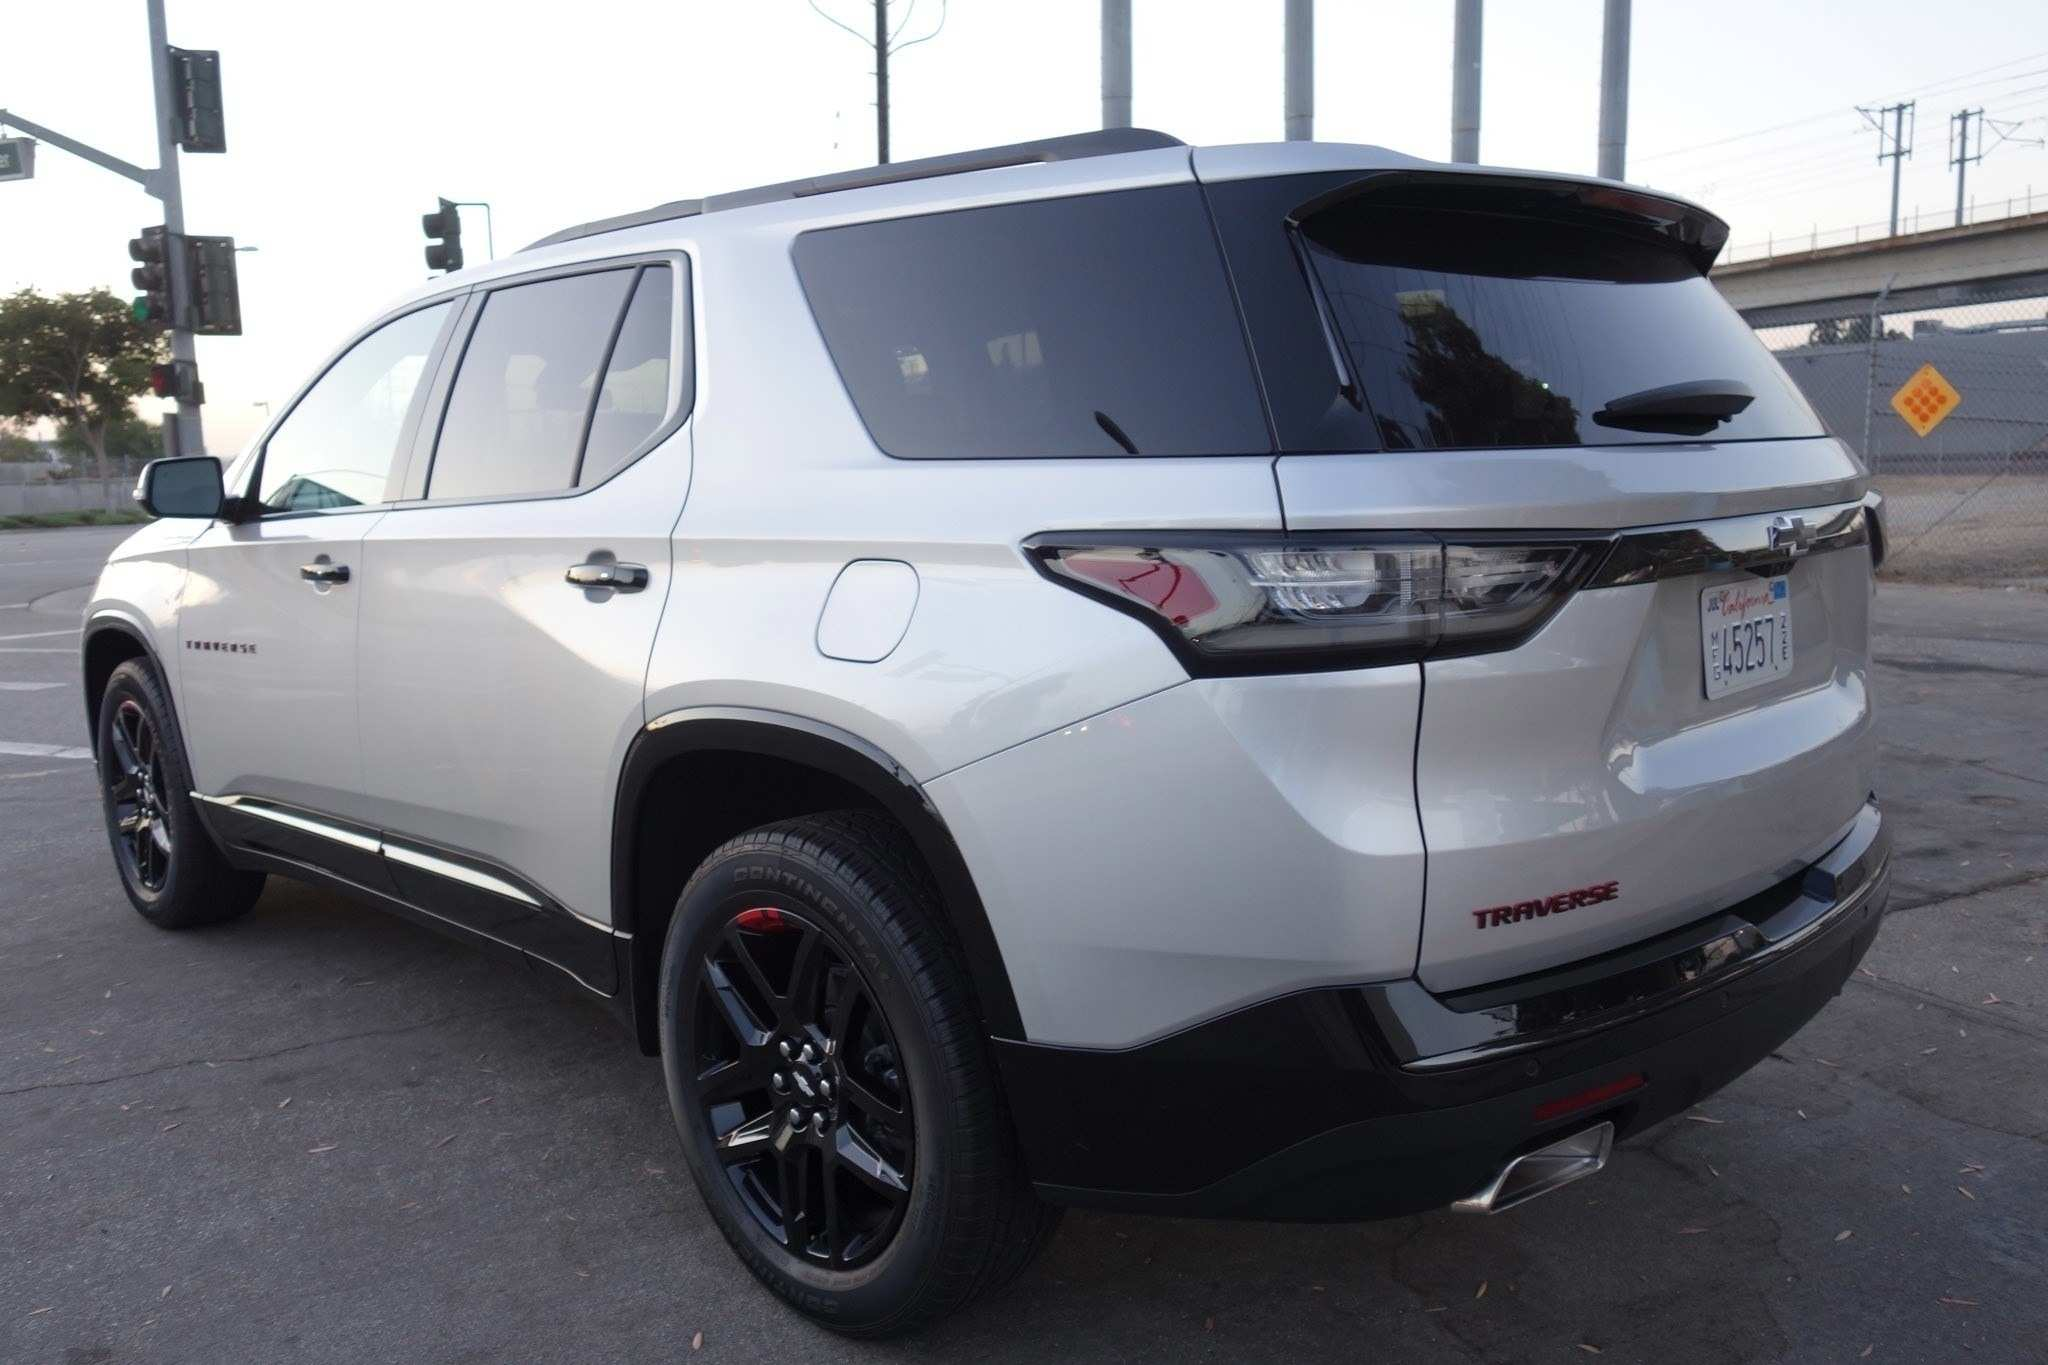 68 All New 2020 Chevrolet Traverse Model with 2020 Chevrolet Traverse